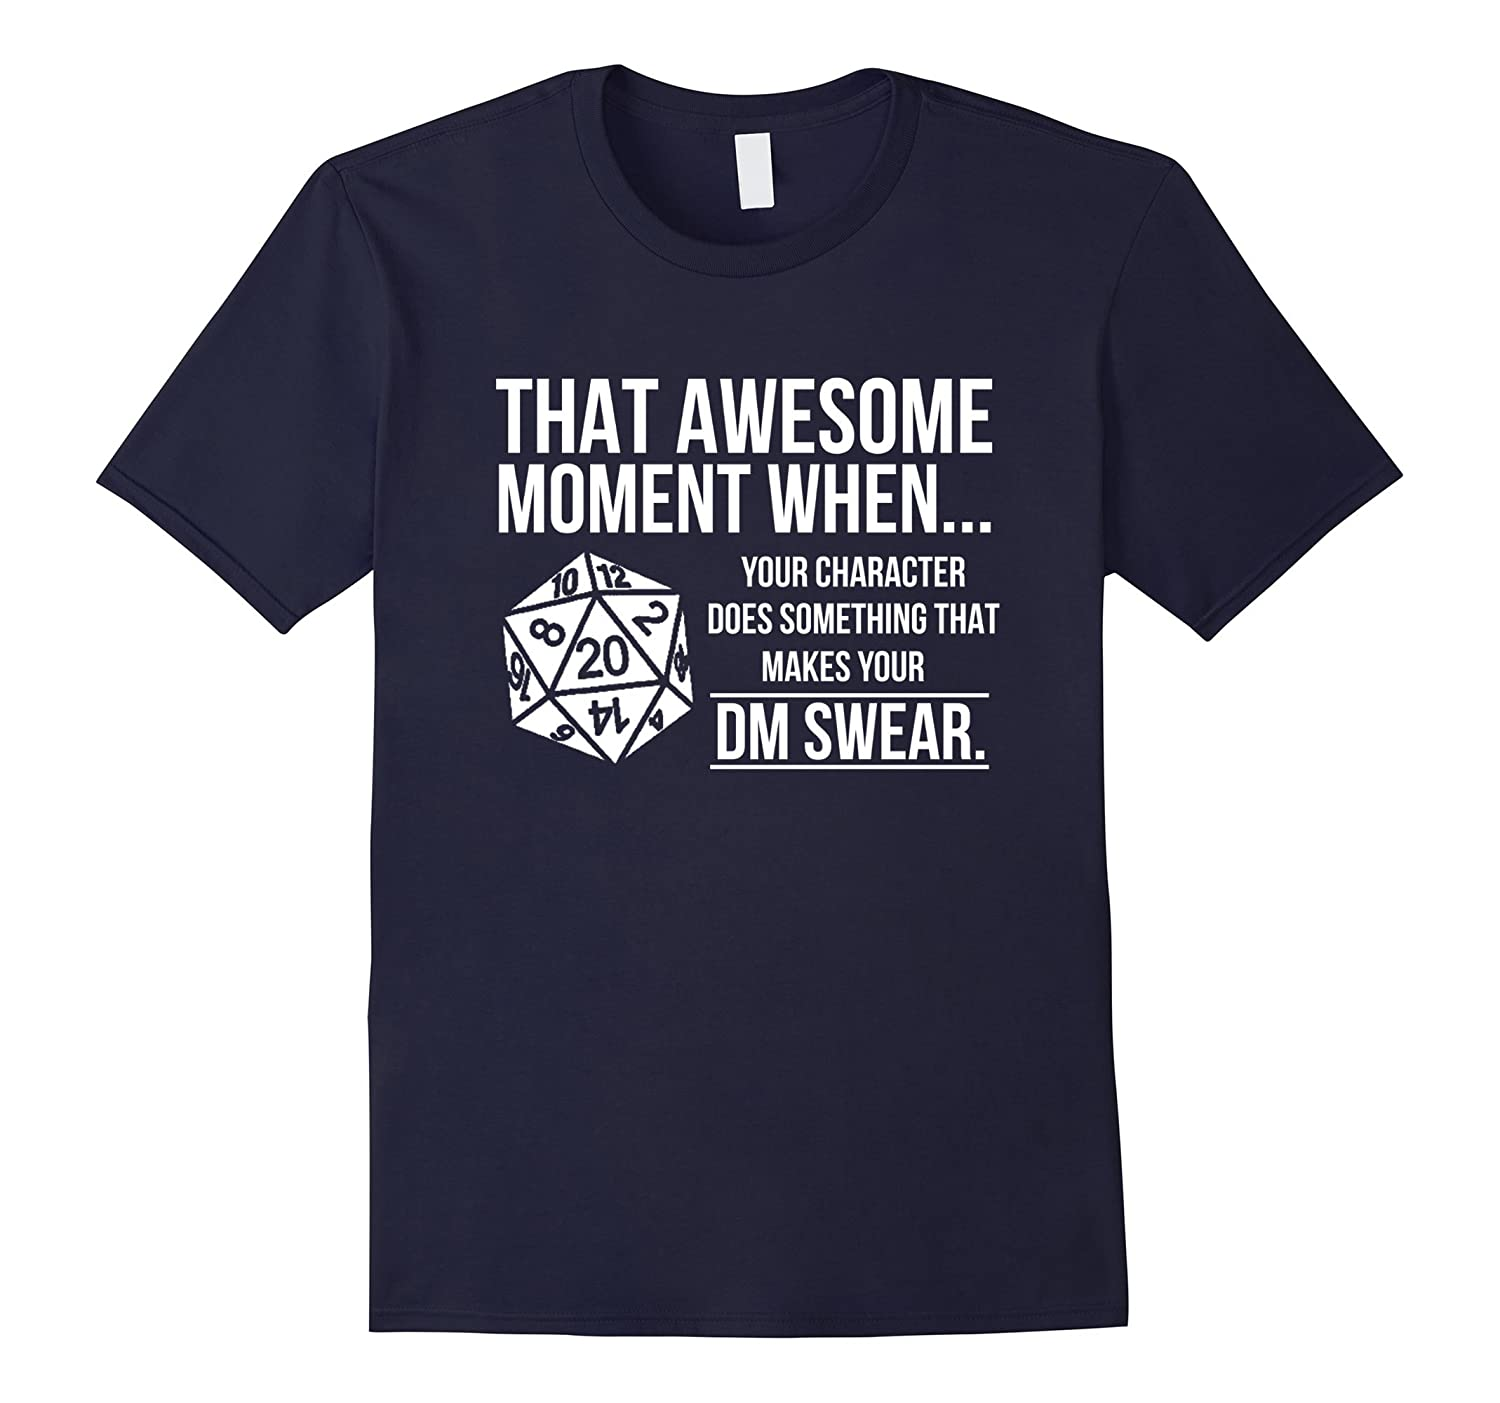 Your character does something that makes your DM swear Tee-Vaci